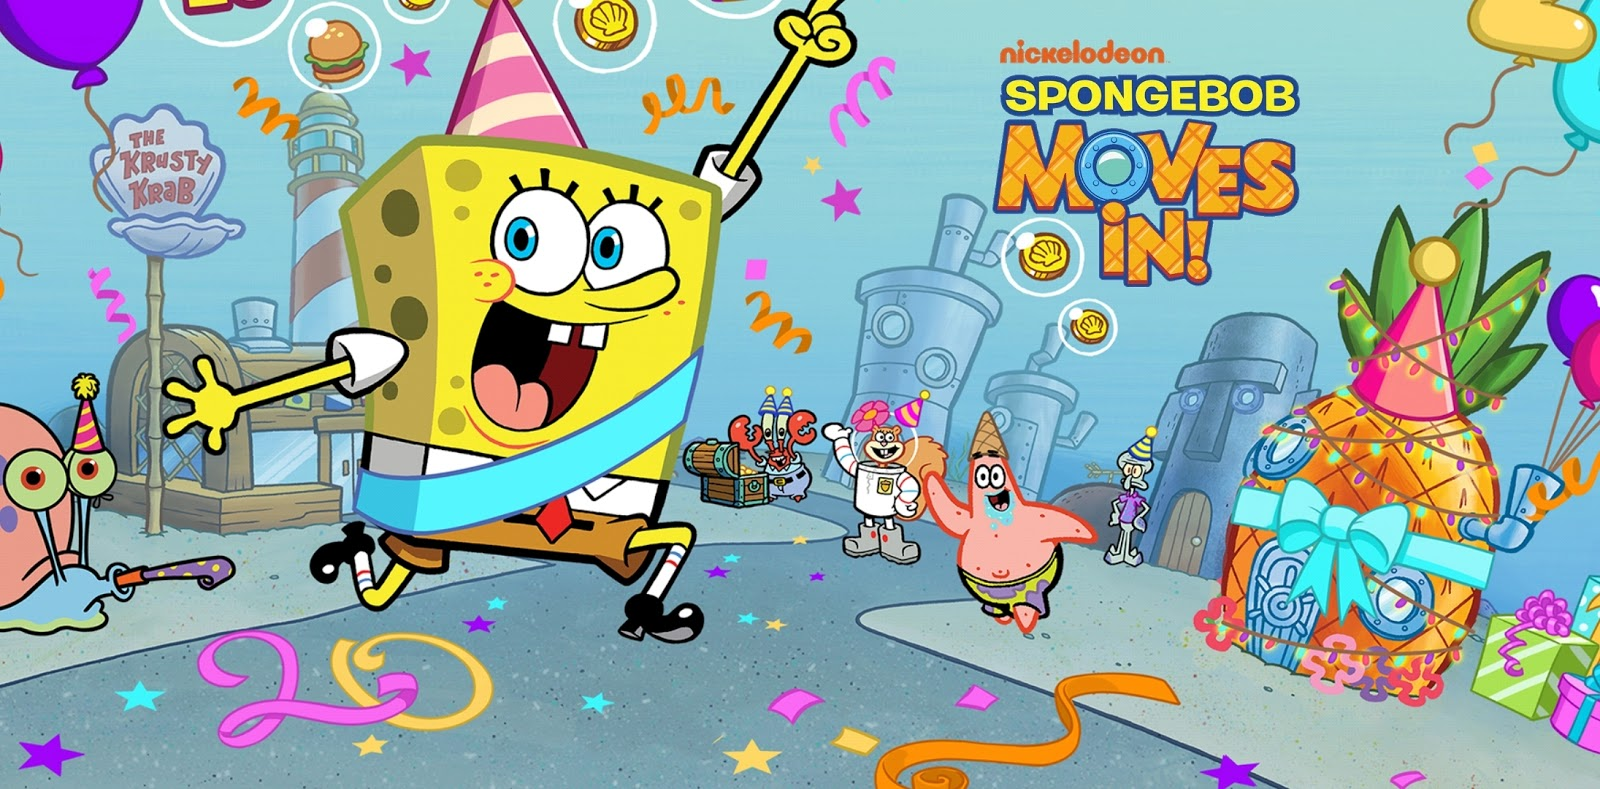 Spongebob moves in review, game spongebob terbaik, info game terbaru, review game terbaru, game spongebob, game rpg terbaik, game android terbaik 2019,